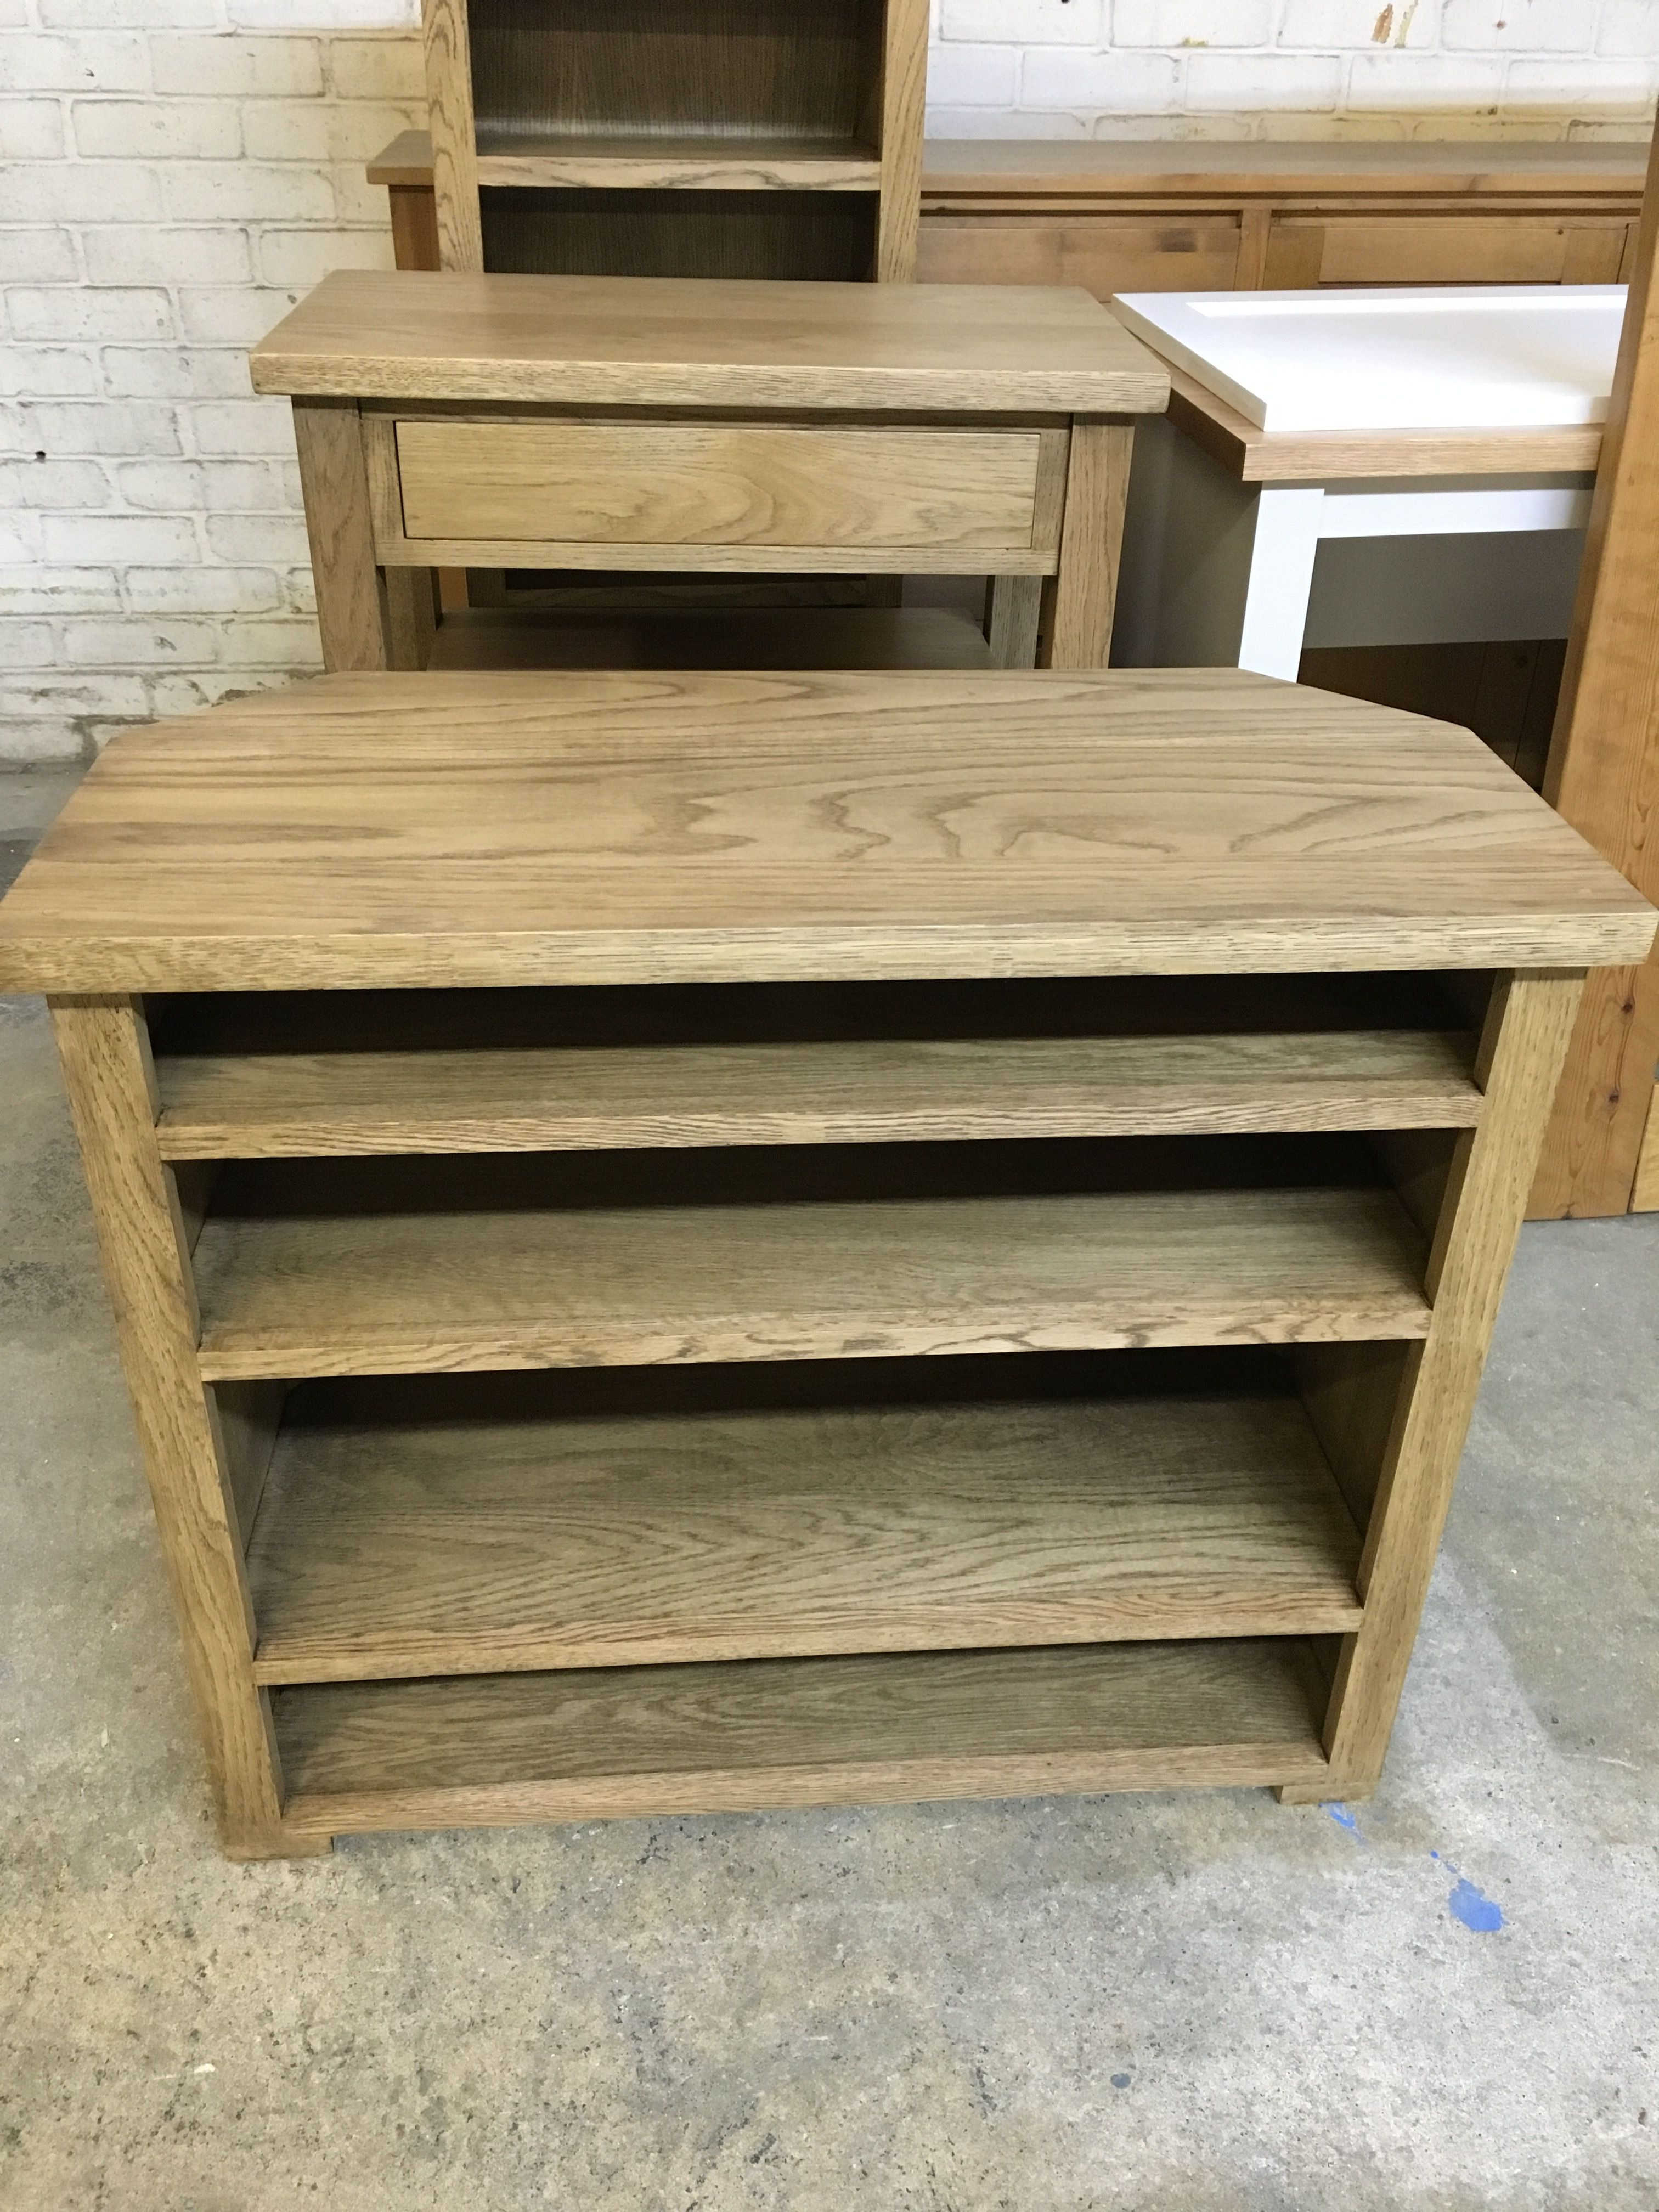 Made To Order By Cobwebs Furniture Company.